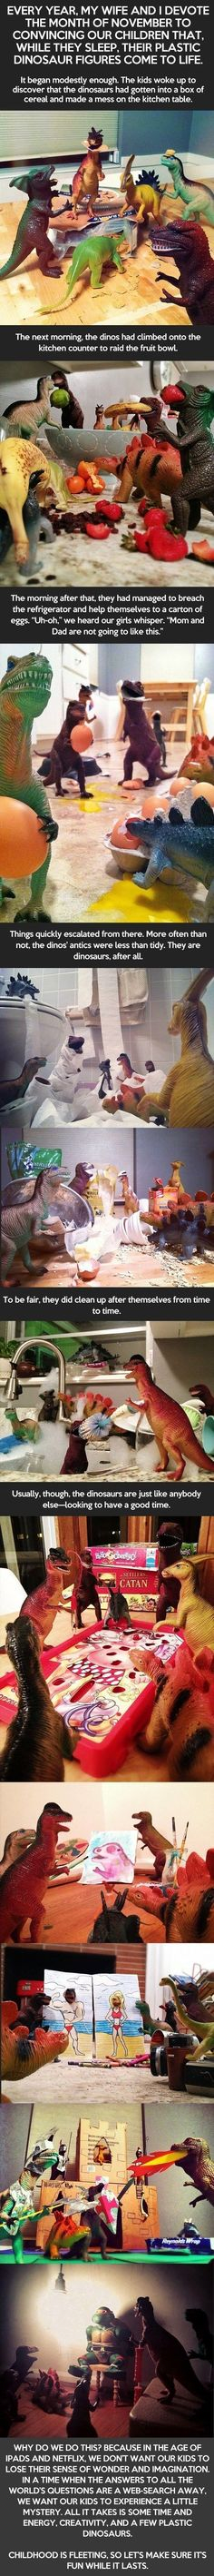 While Their Kids Sleep, These Parents Pull Off This Amazing Stunt: Plastic Dinosaur Figures Come to Life. This. Is great.